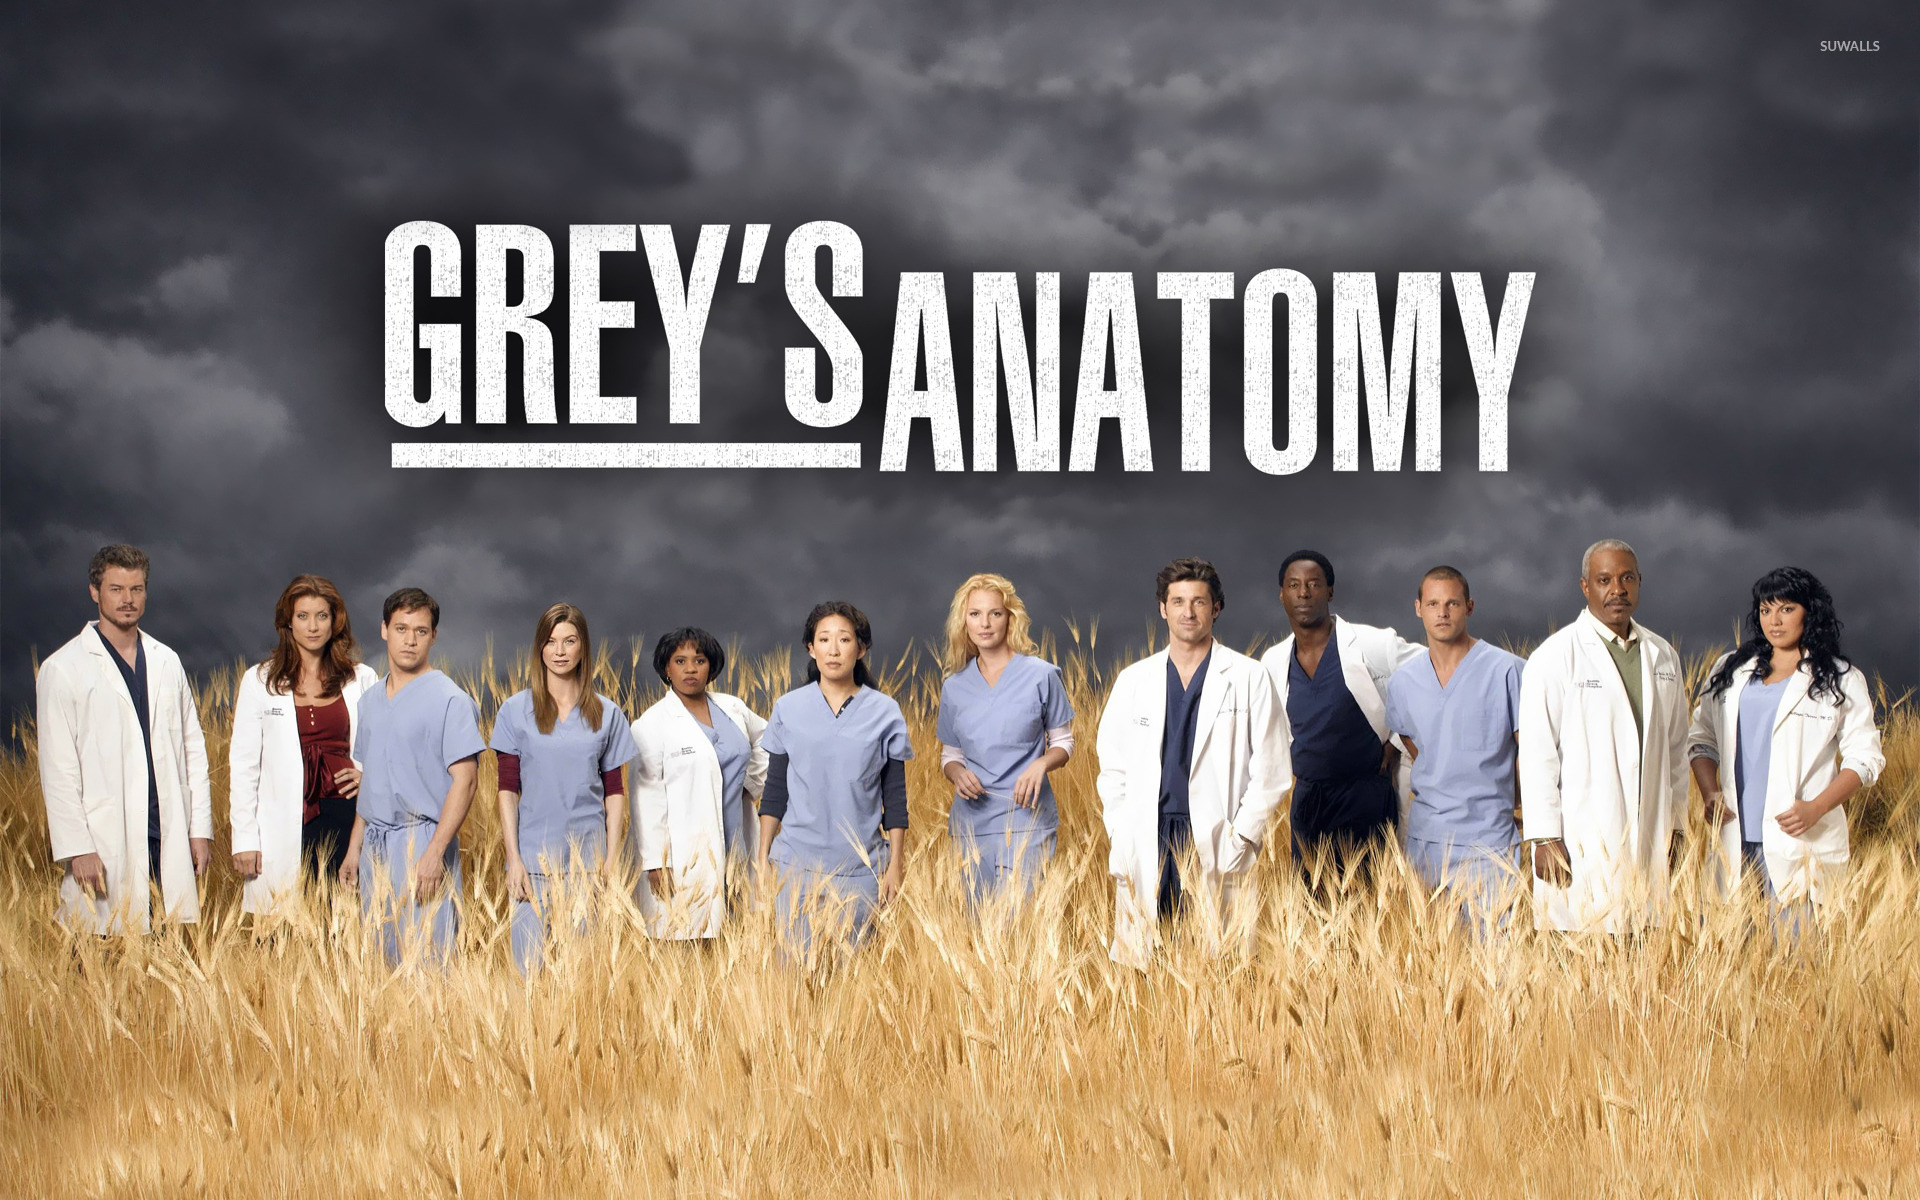 Greys Anatomy Wallpaper 11   1920 X 1200 stmednet 1920x1200